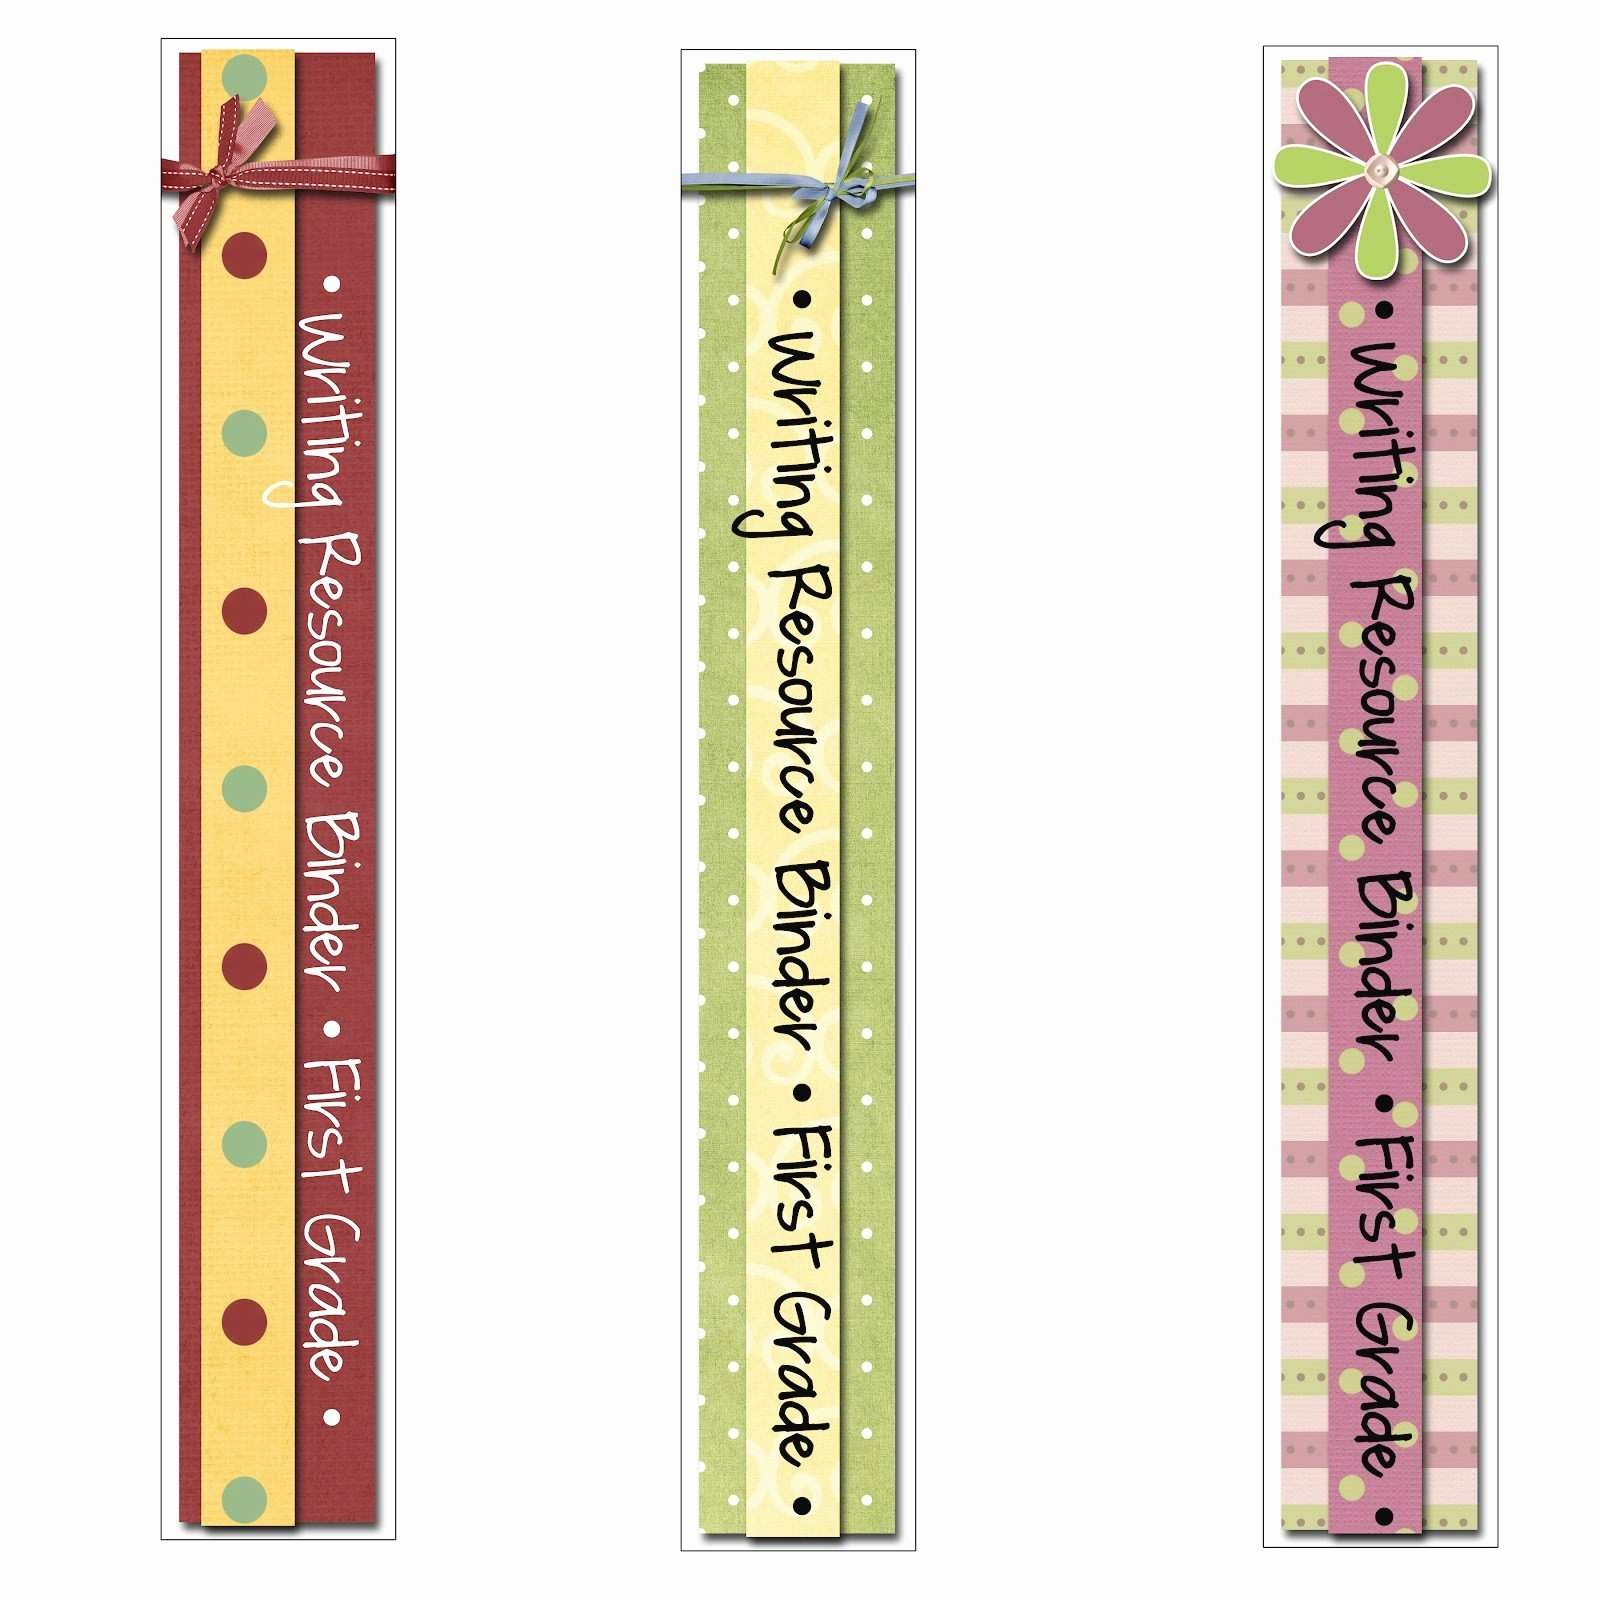 Avery 2 Binder Spine Template Best Of Template for Binder Spine Spine Label Template Binder